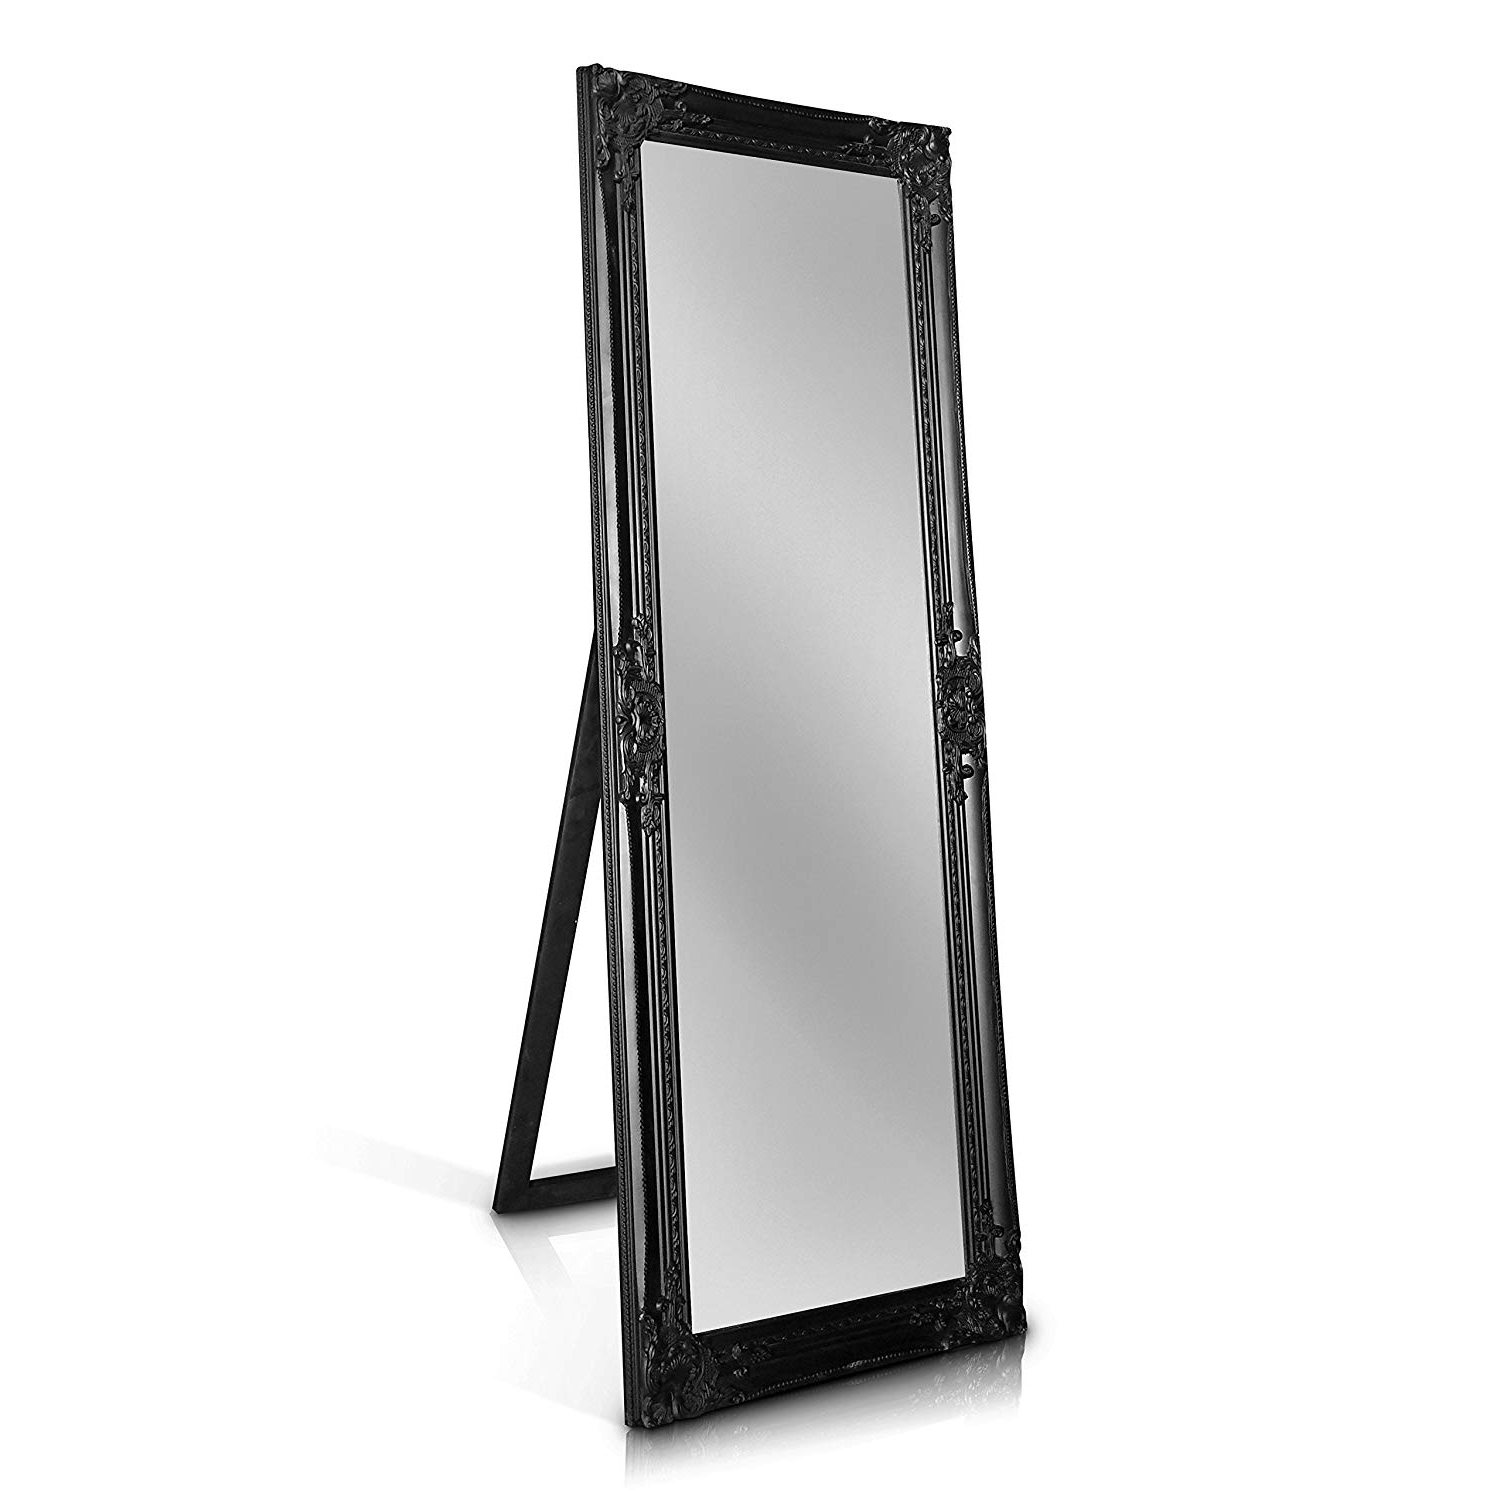 Widely Used Stand Up Wall Mirrors Intended For Rocococasa Chic – Shabby Chic Wall Mirror – 130X45 Cm Solid Wood – Large French Vintage Style Full Length Standing Mirror – Antique Black (View 18 of 20)